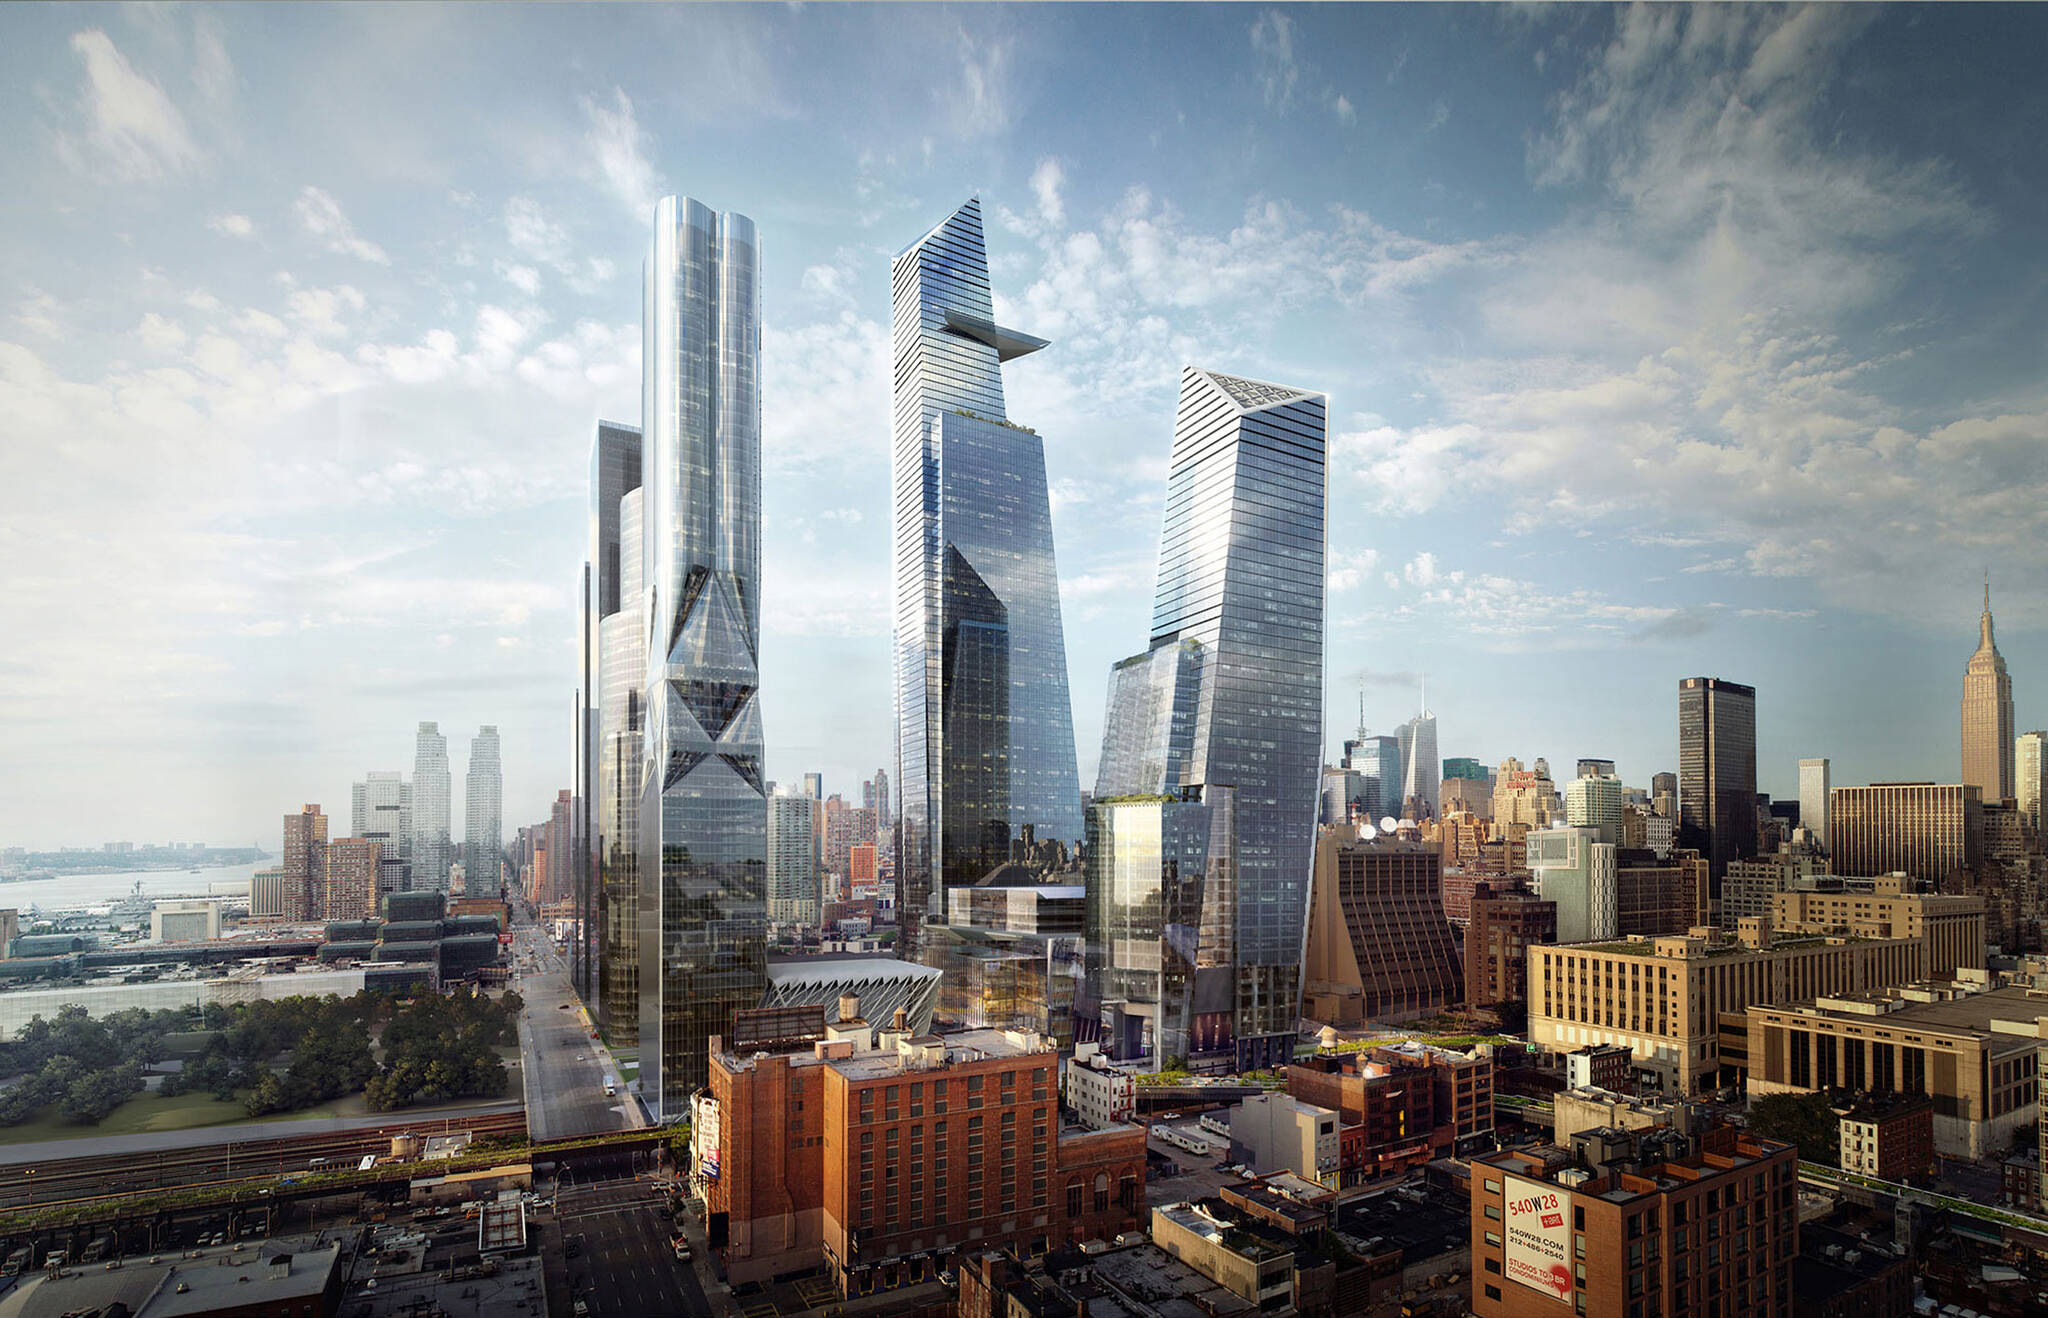 Aerial view of the surrounding buildings of the Hudson Yards Autograph Hotel project by Marriott, a modular hotel tower located at 432 West 31st Street in Hudson Yards, New York City designed by the architecture studio Danny Forster & Architecture